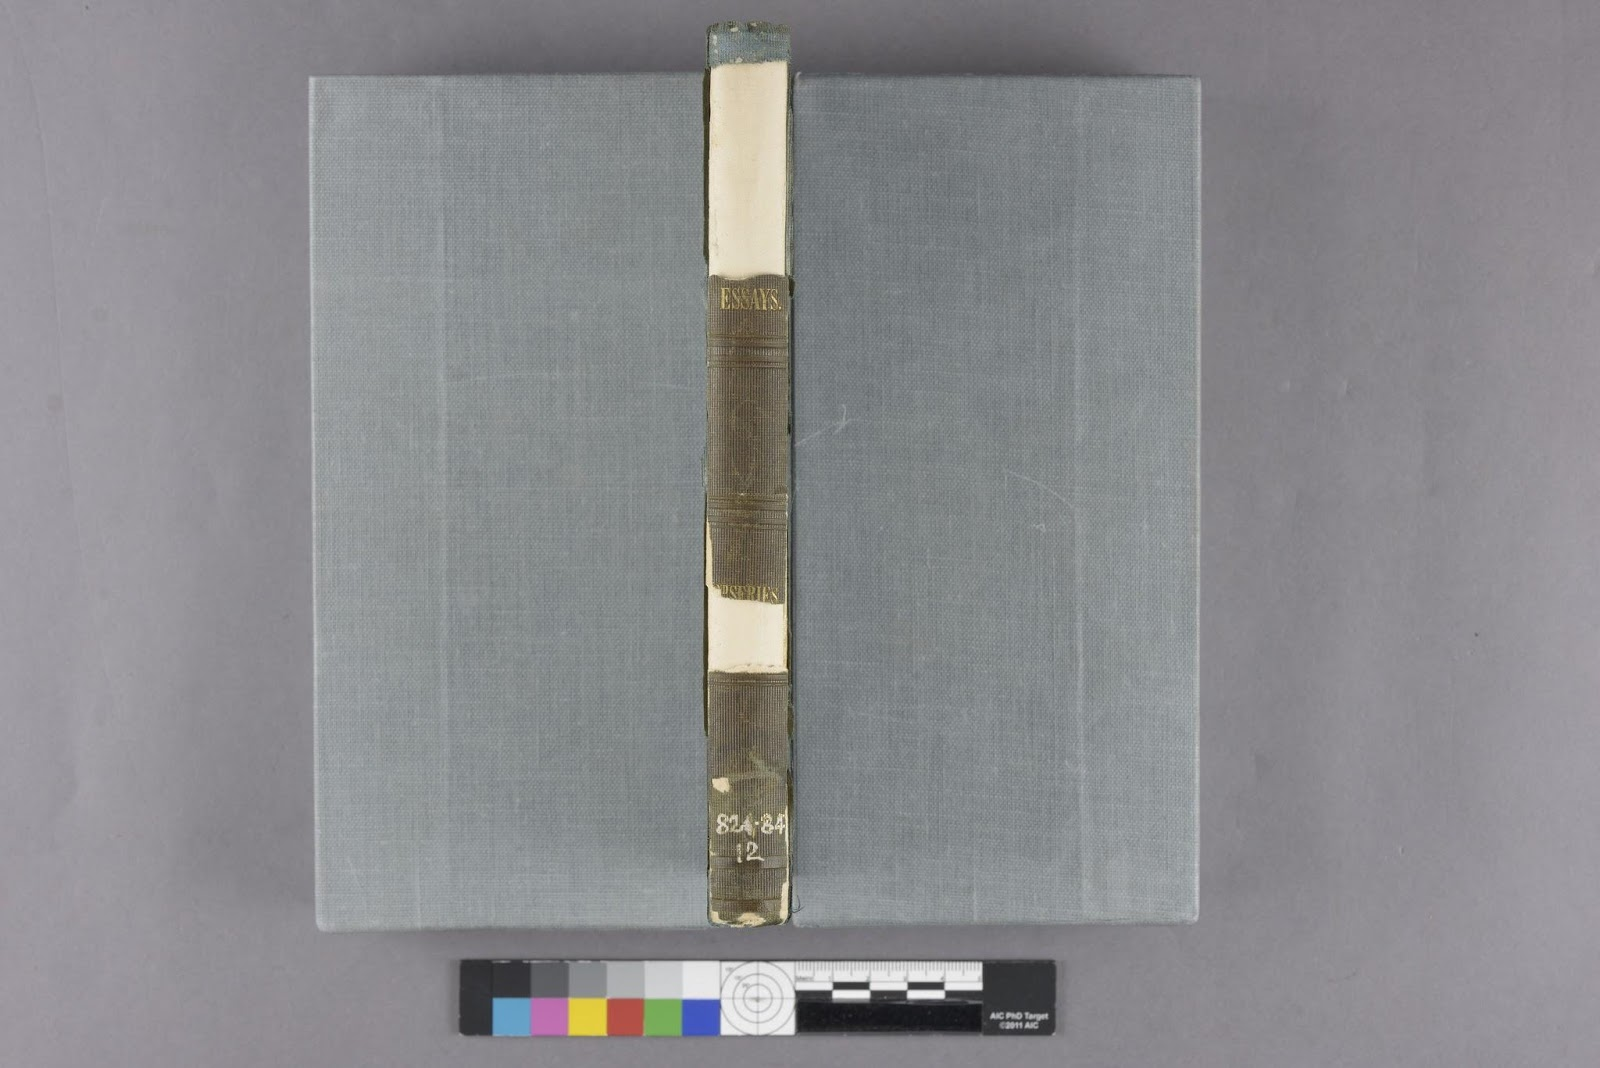 Spine of R. W. Emerson's Essays (1841) before undergoing conservation treatment